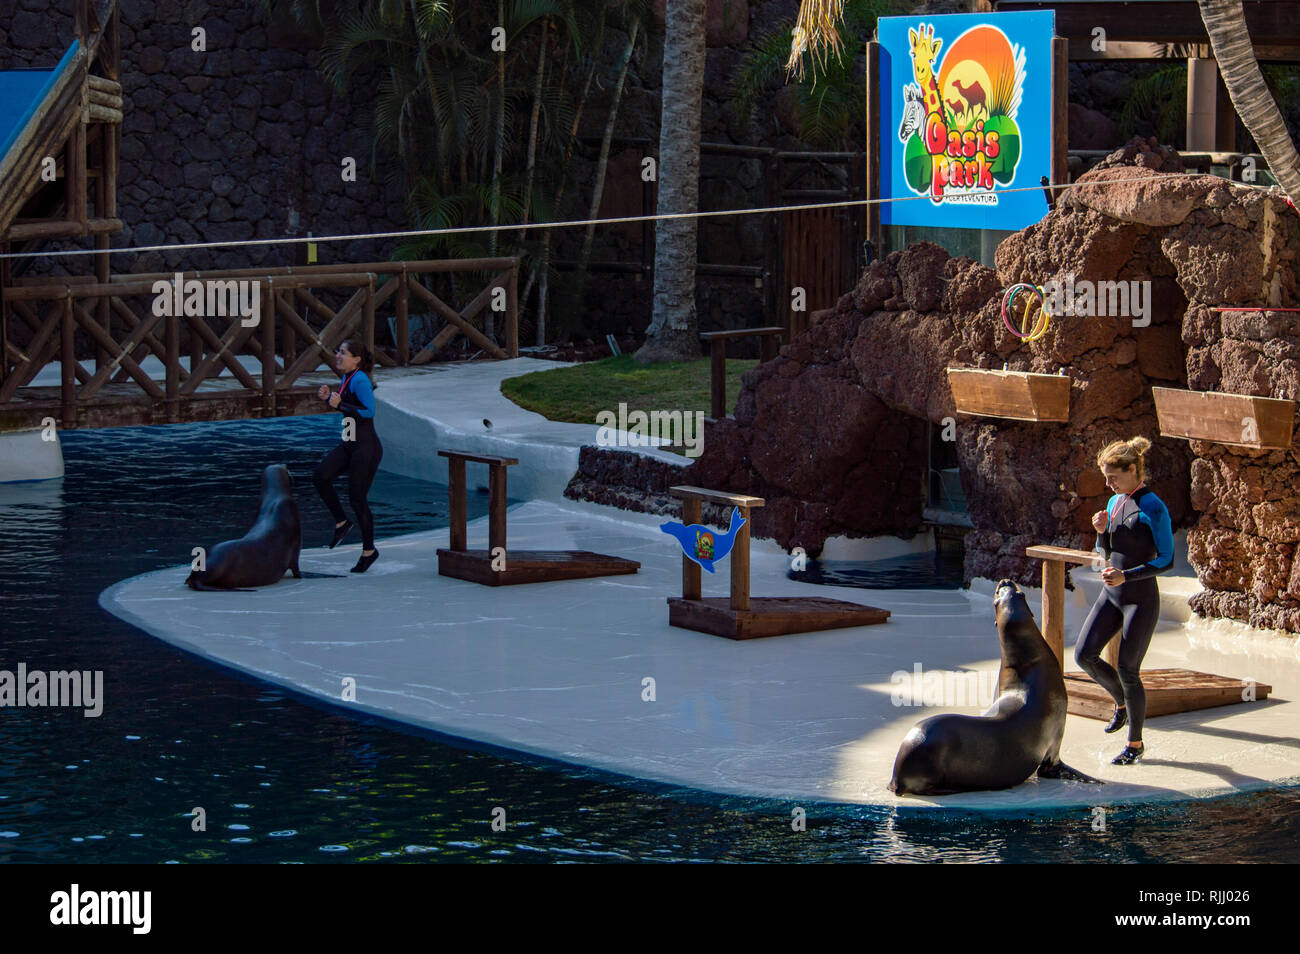 A sea lion show at the Oasis Park in Fuerteventura, Canary Islands Stock Photo